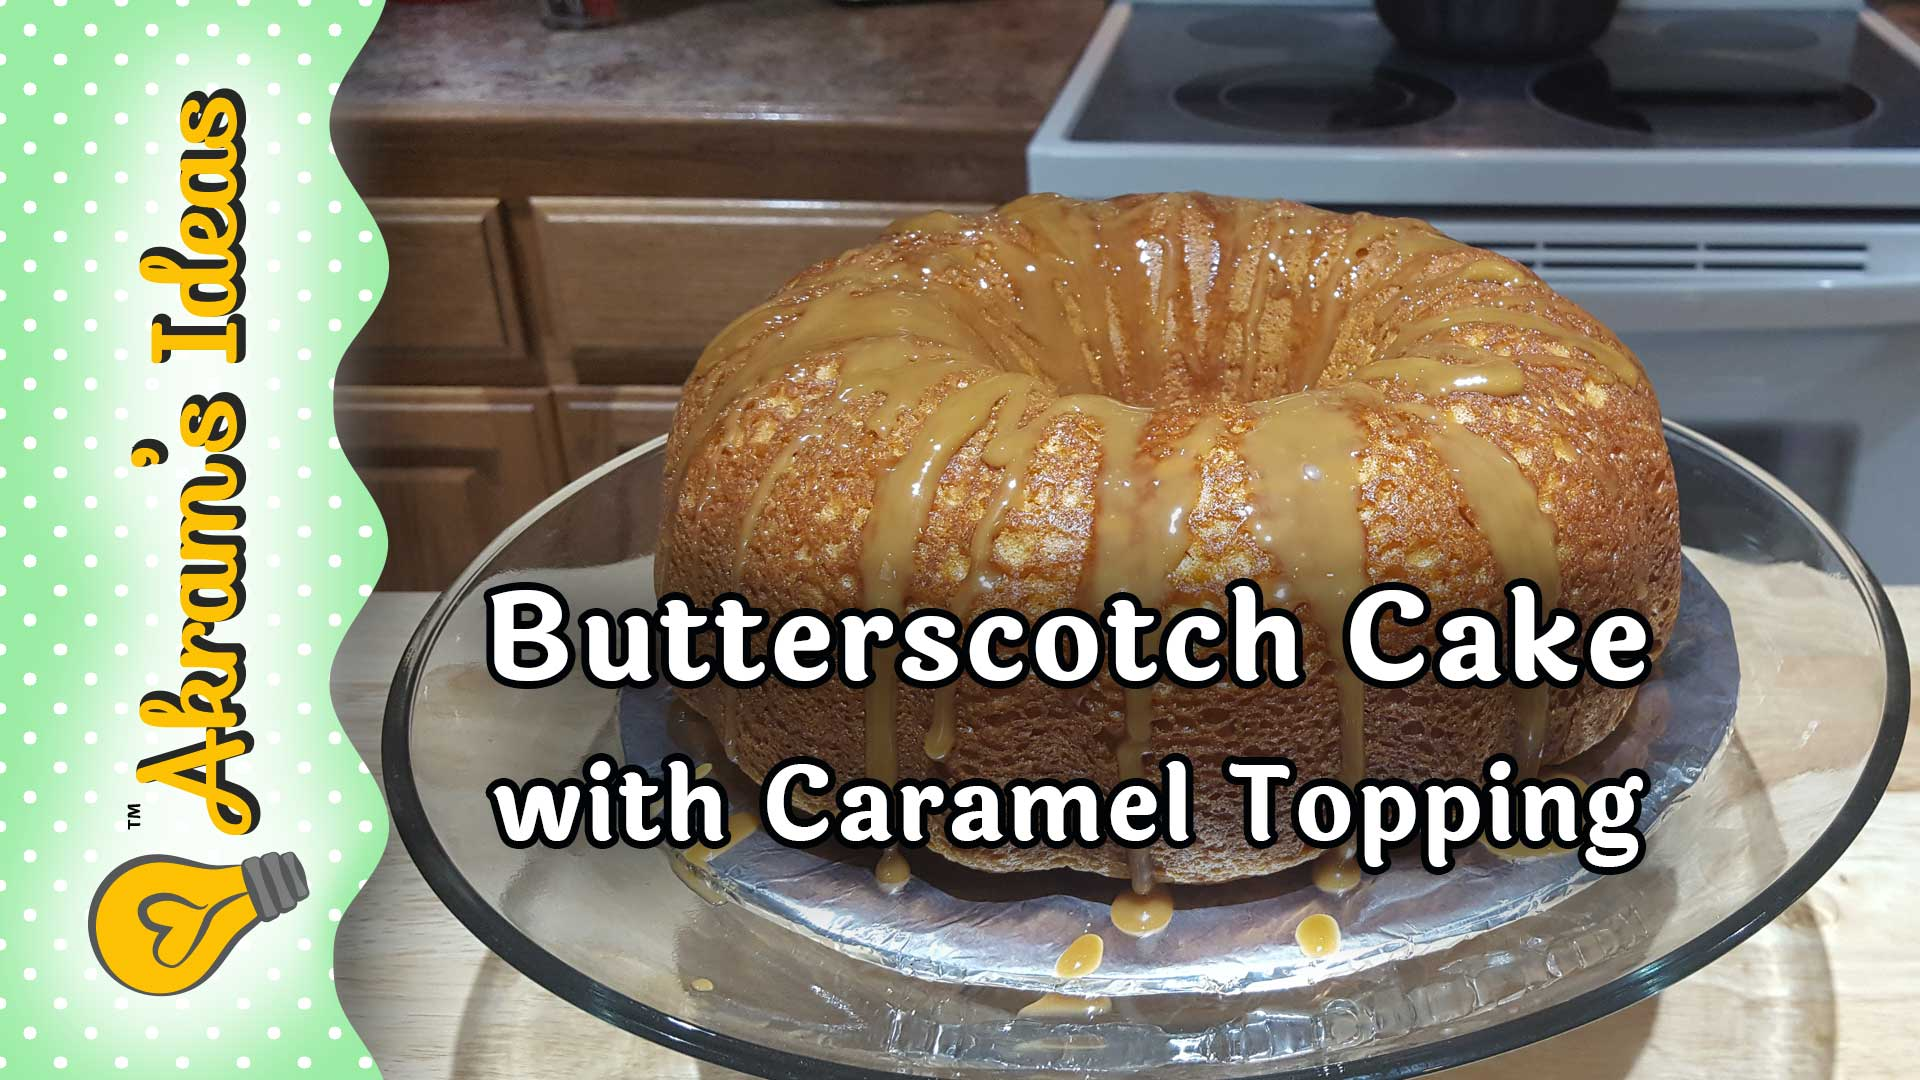 Just in time for the holidays a recipe for incredibly moist butterscotch cake using butterscotch soda and topped with a caramel topping.